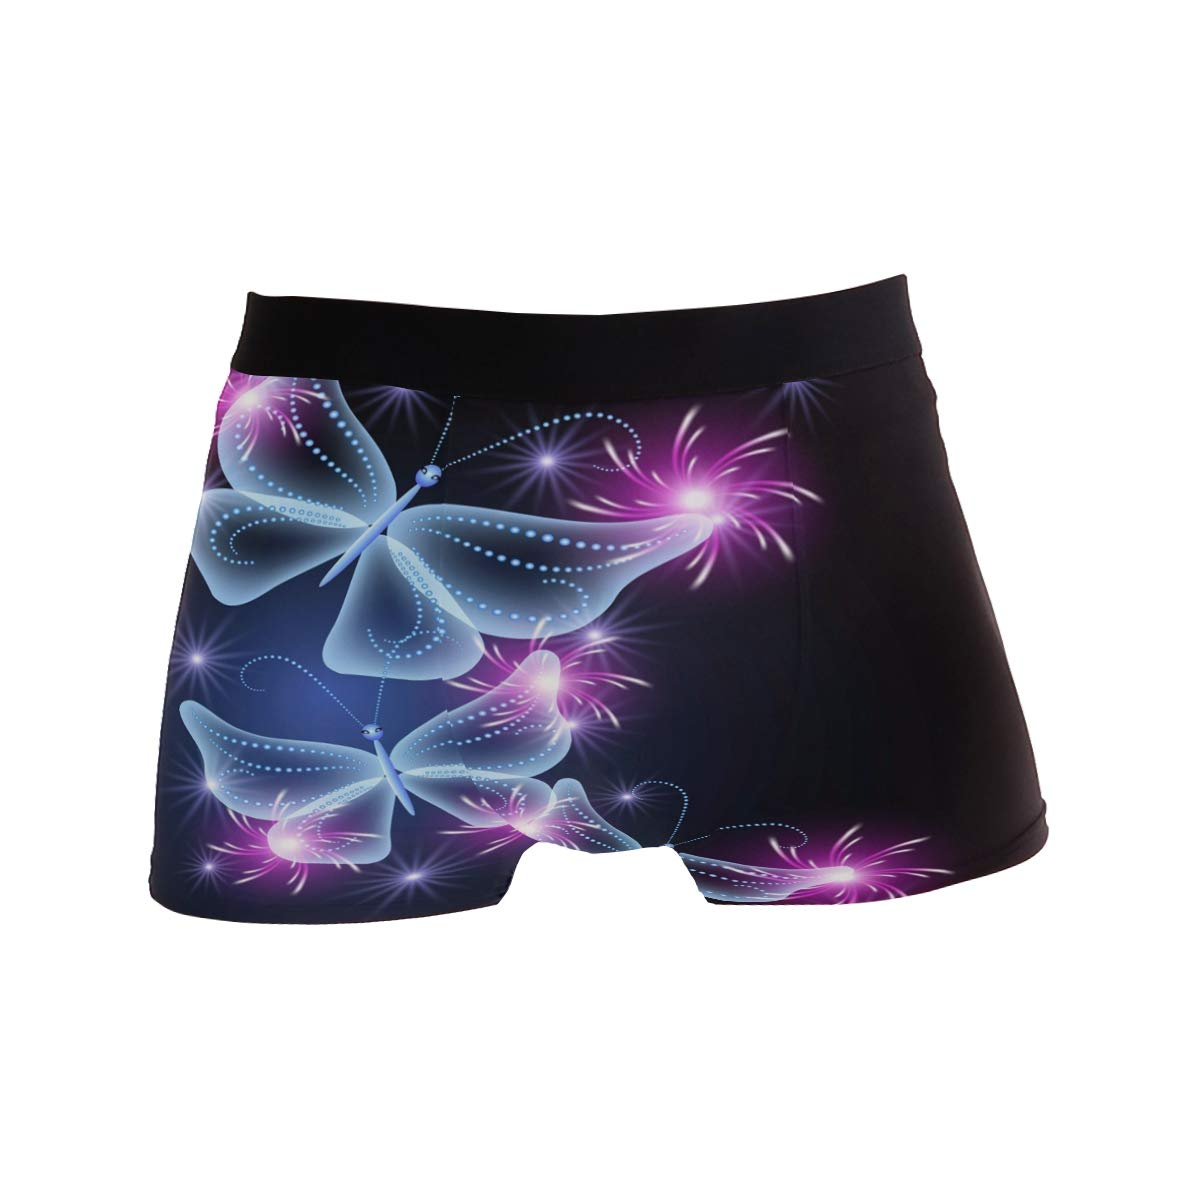 SUABO Men Boxer Briefs Polyester Underwear Men 2 Pack Boxer Briefs for Valentines Gift with Butterflies Pattern